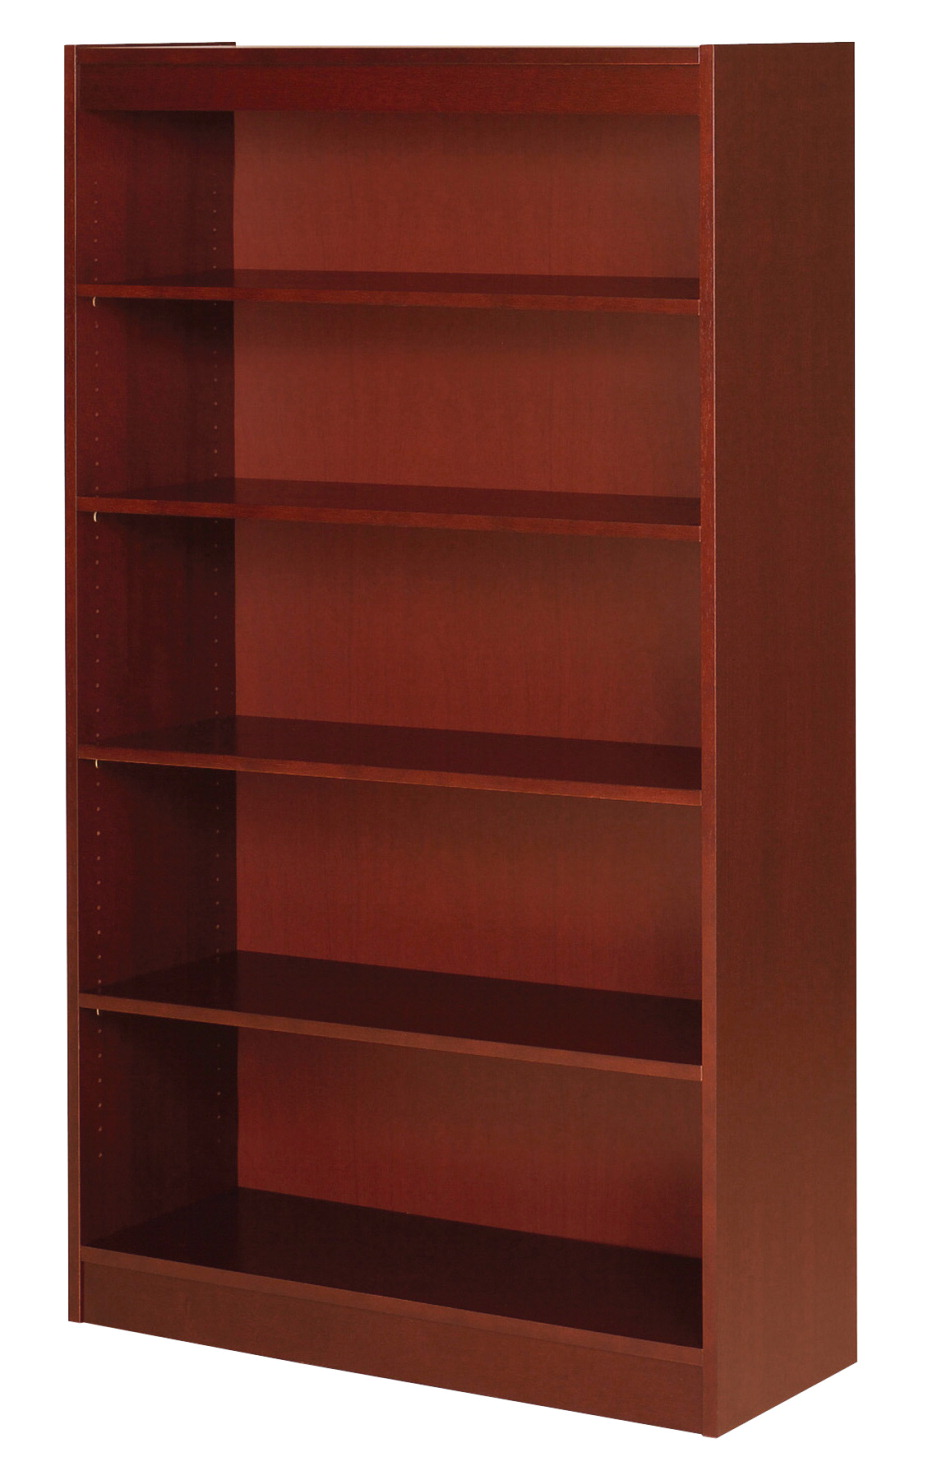 Classroom Select Bookcase, 5 Shelves, 36 x 12 x 60 Inches, Wood Veneer, Various Options